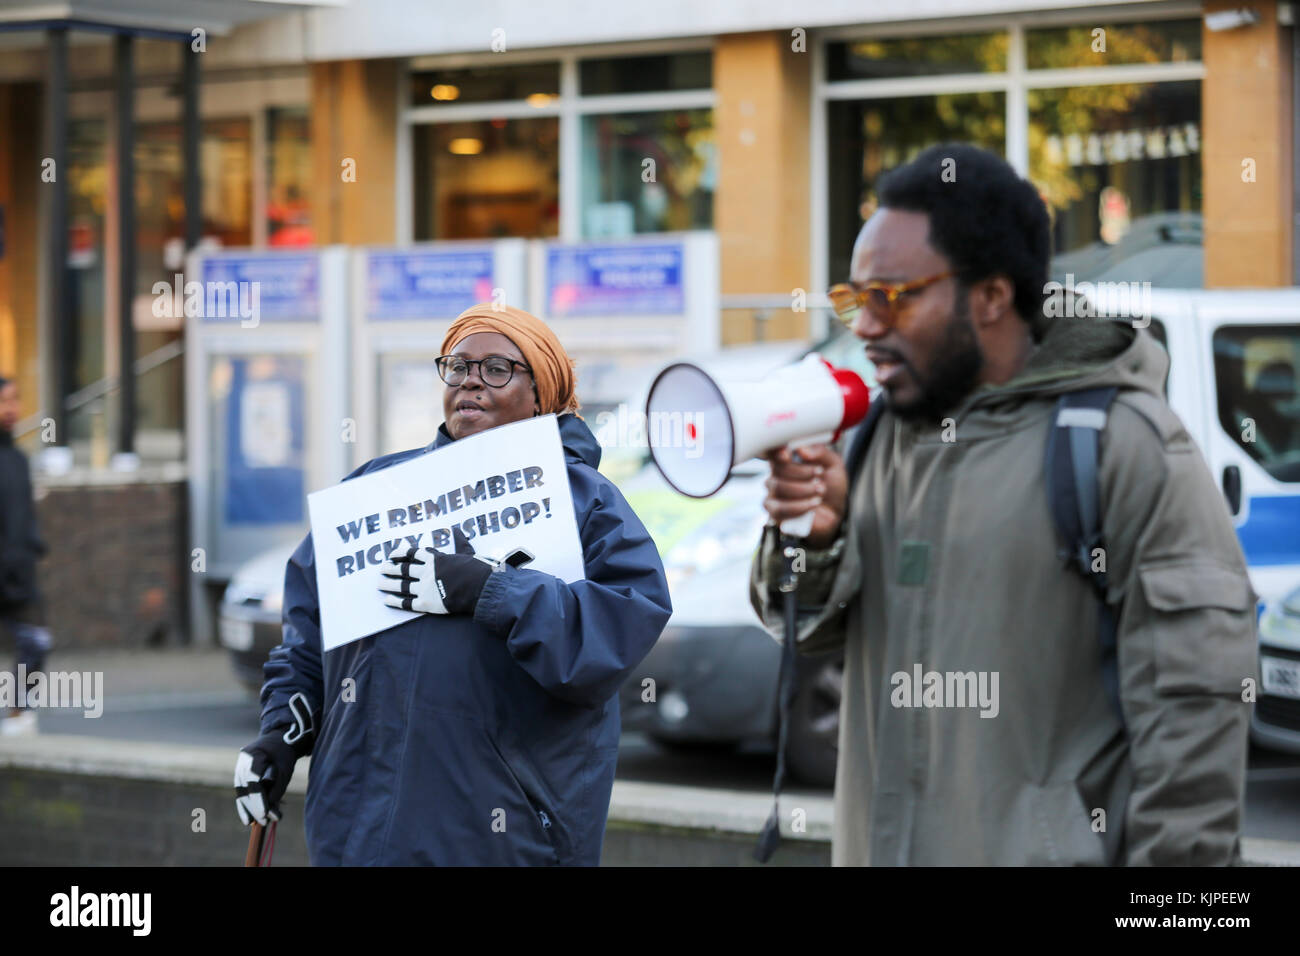 London, UK. 25th Nov, 2017. 25th Nov, 2017. Protest outside Brixton police station to remember Ricky Bishop, who - Stock Image